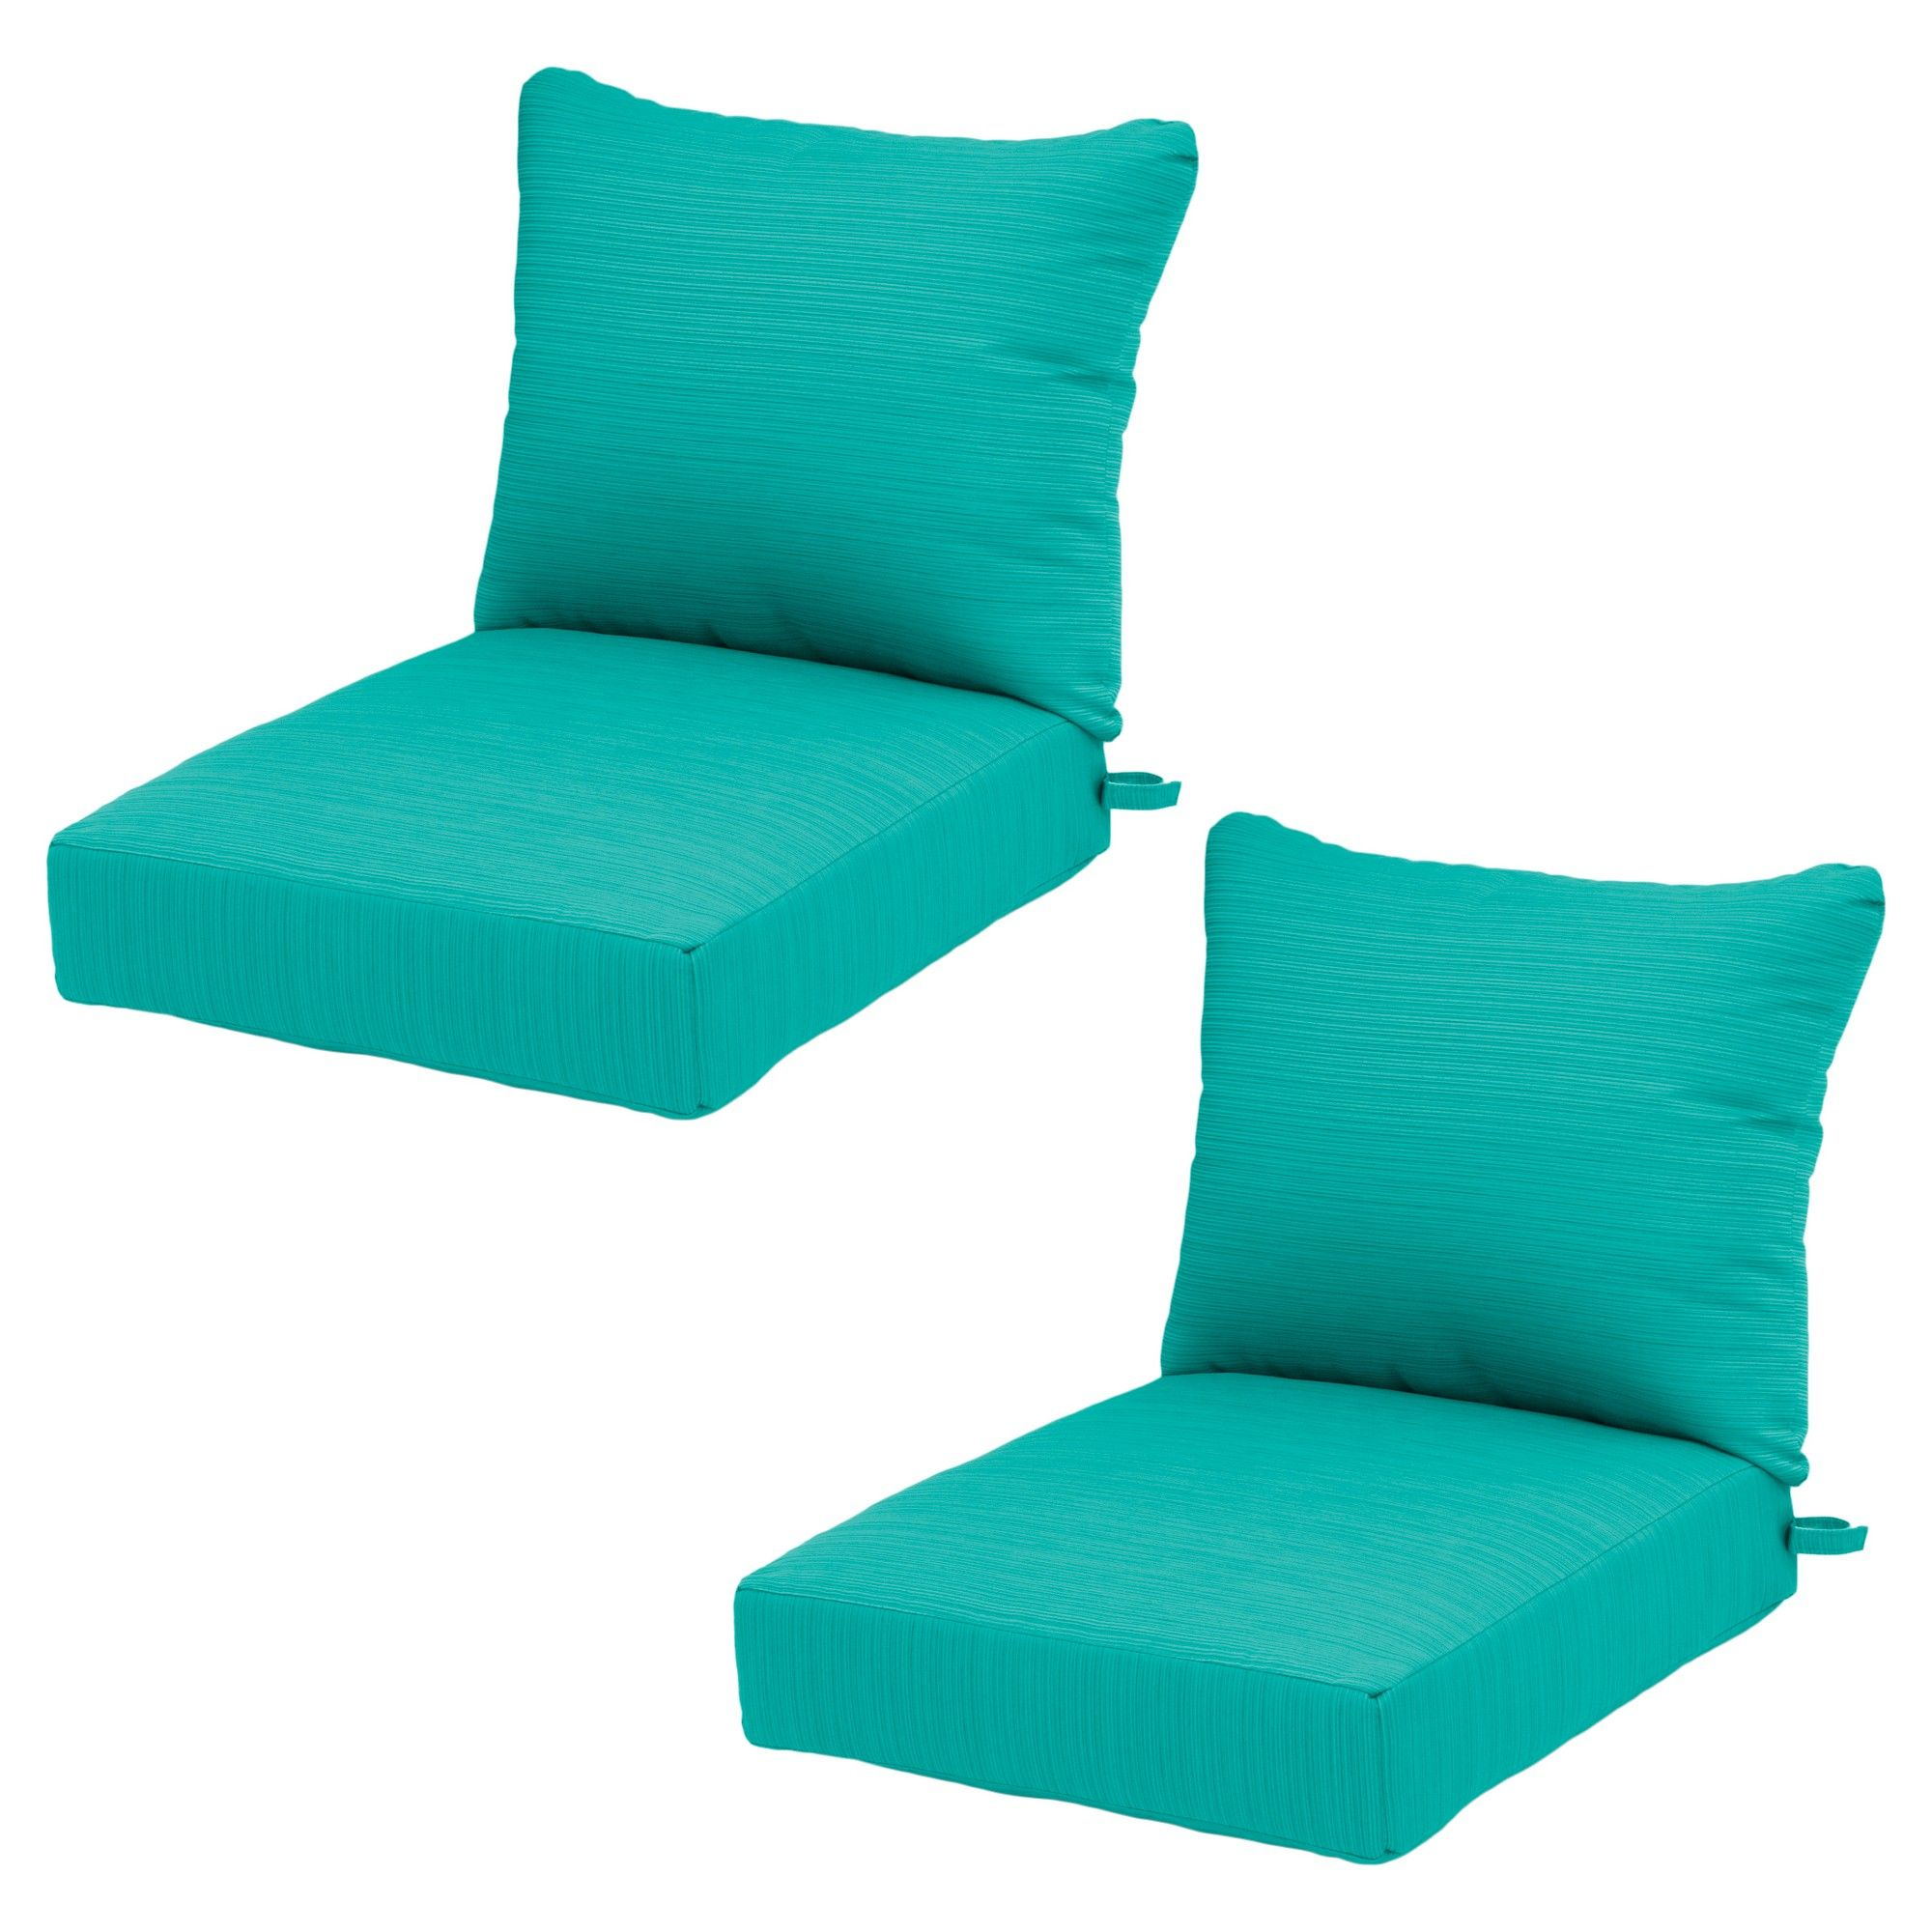 Ft. Walton 4pc Outdoor Deep Seat/Back Cushion   Turquoise   Threshold